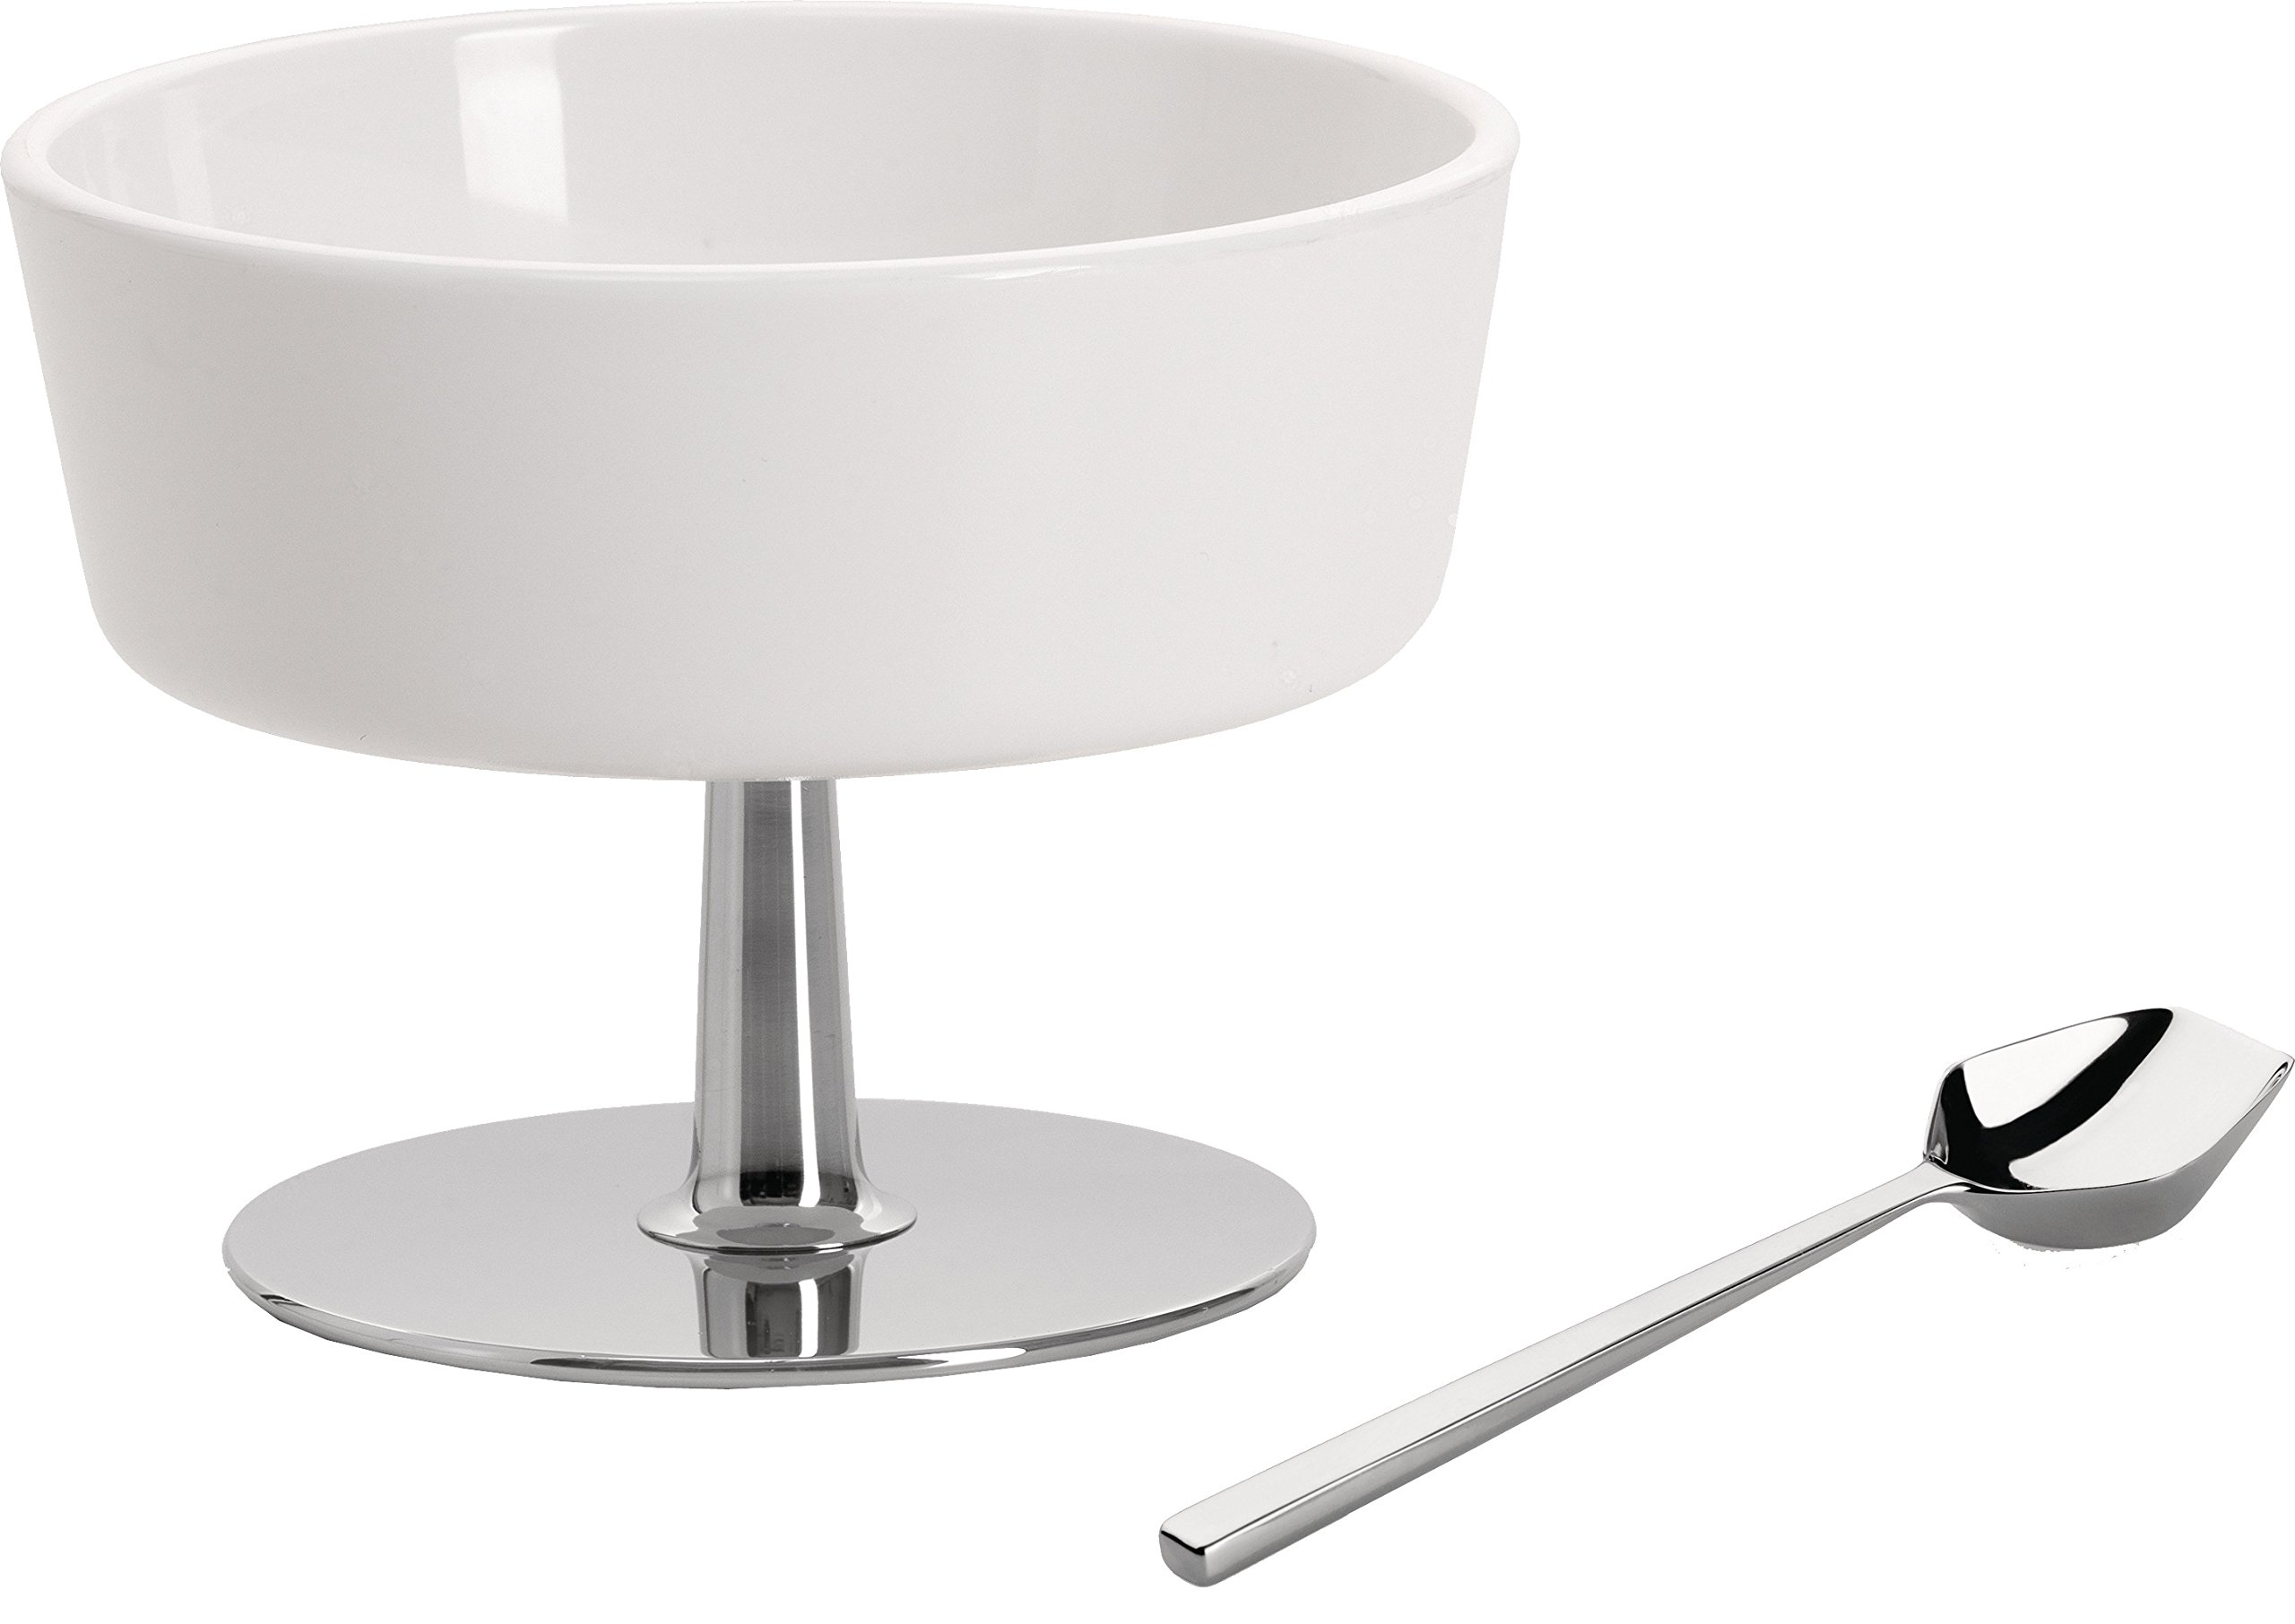 Alessi''Ape'' Bowl For Mixed Nuts in Thermoplastic Resin With Stand And Spoon in 18/10 Stainless Steel Mirror Polished, White